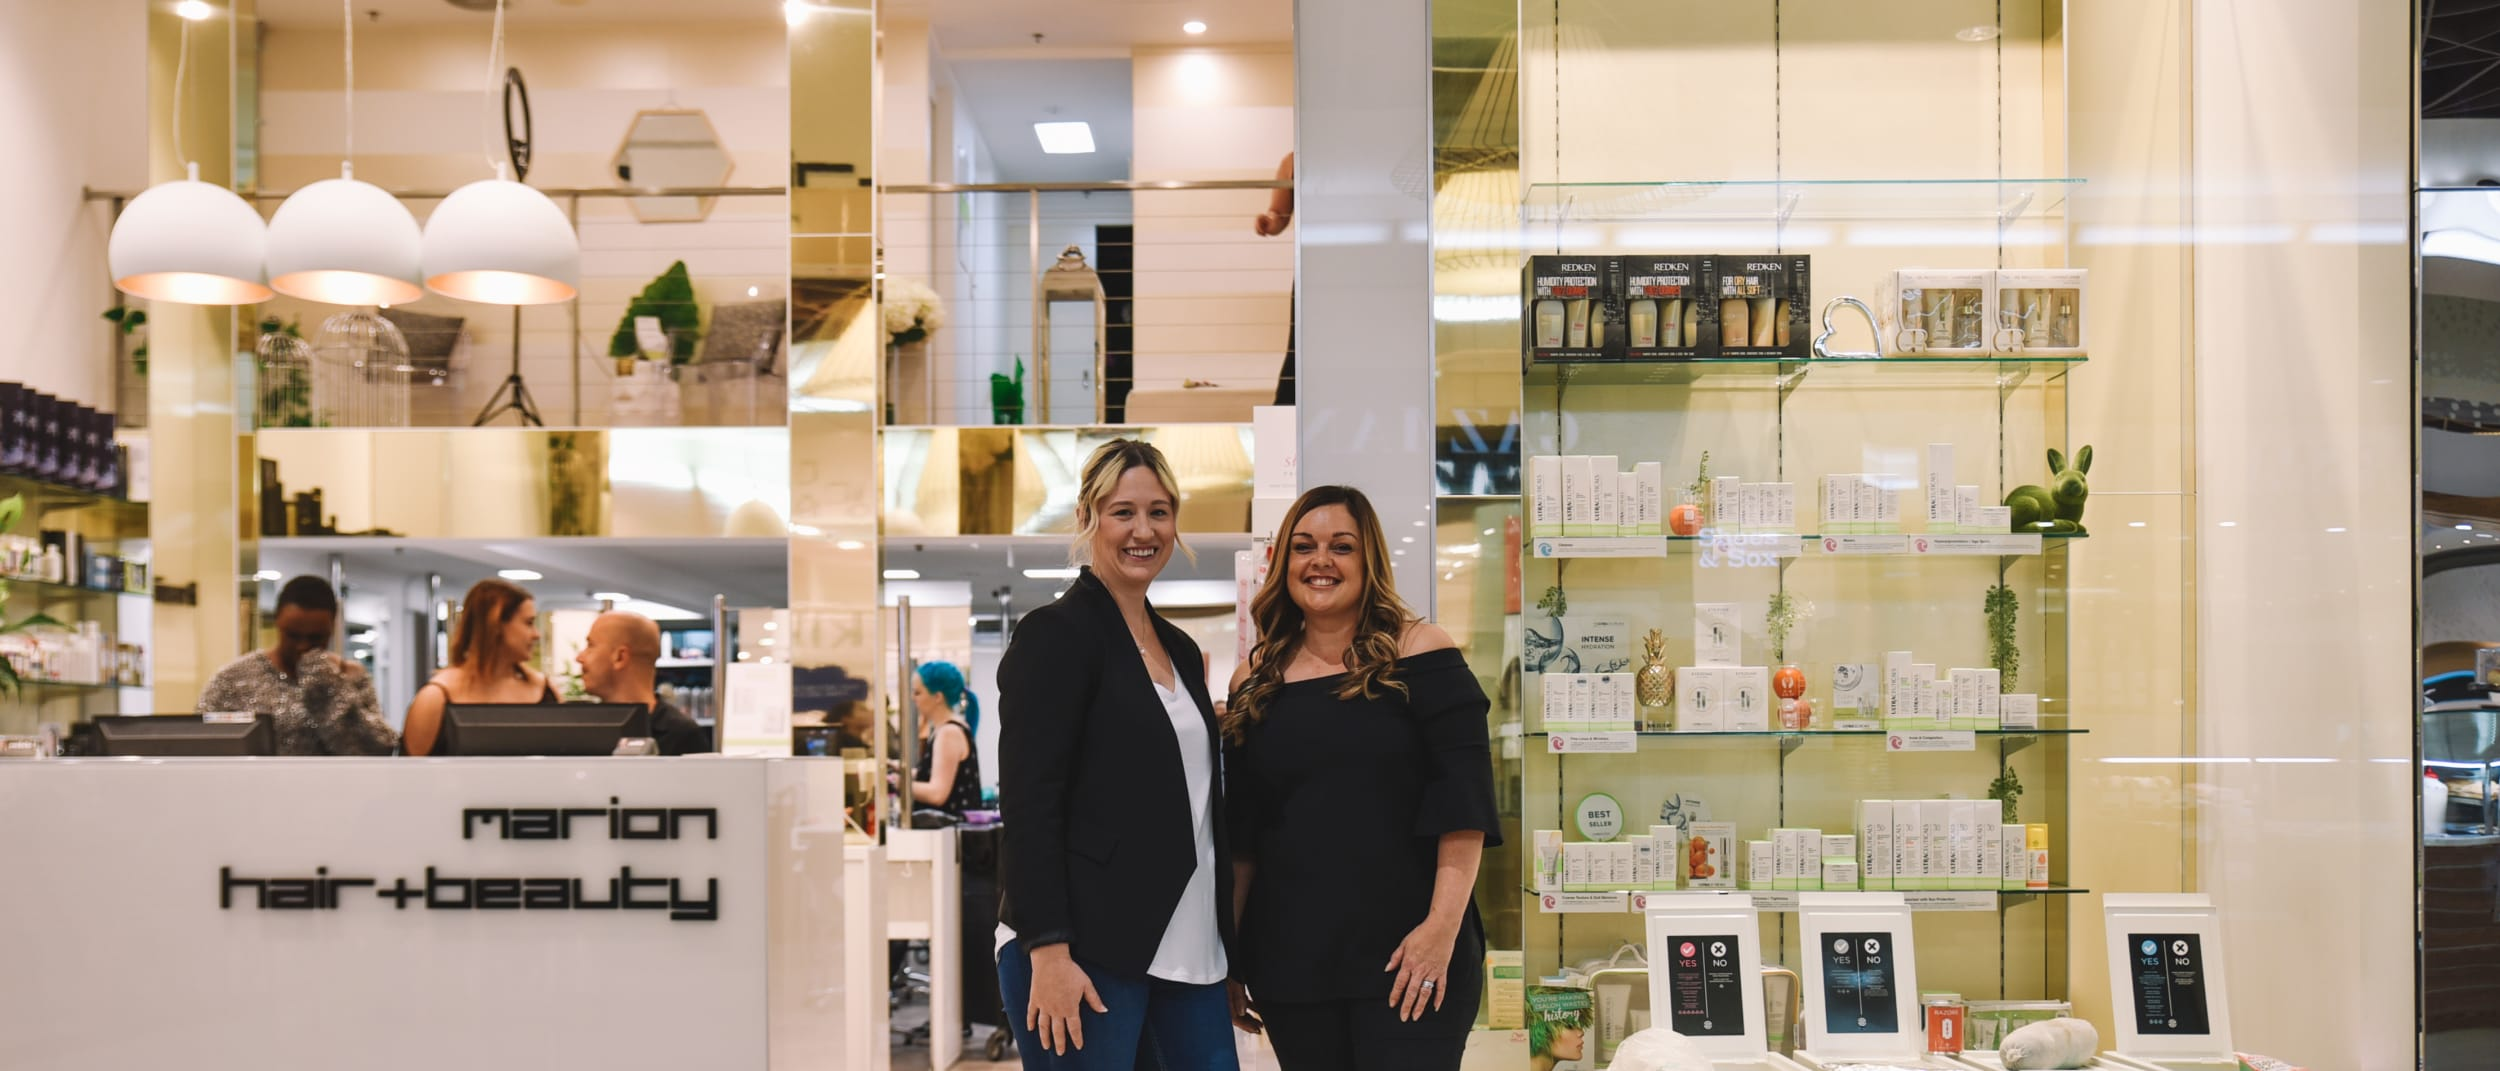 Marion Hair & Beauty: now offering afterpay